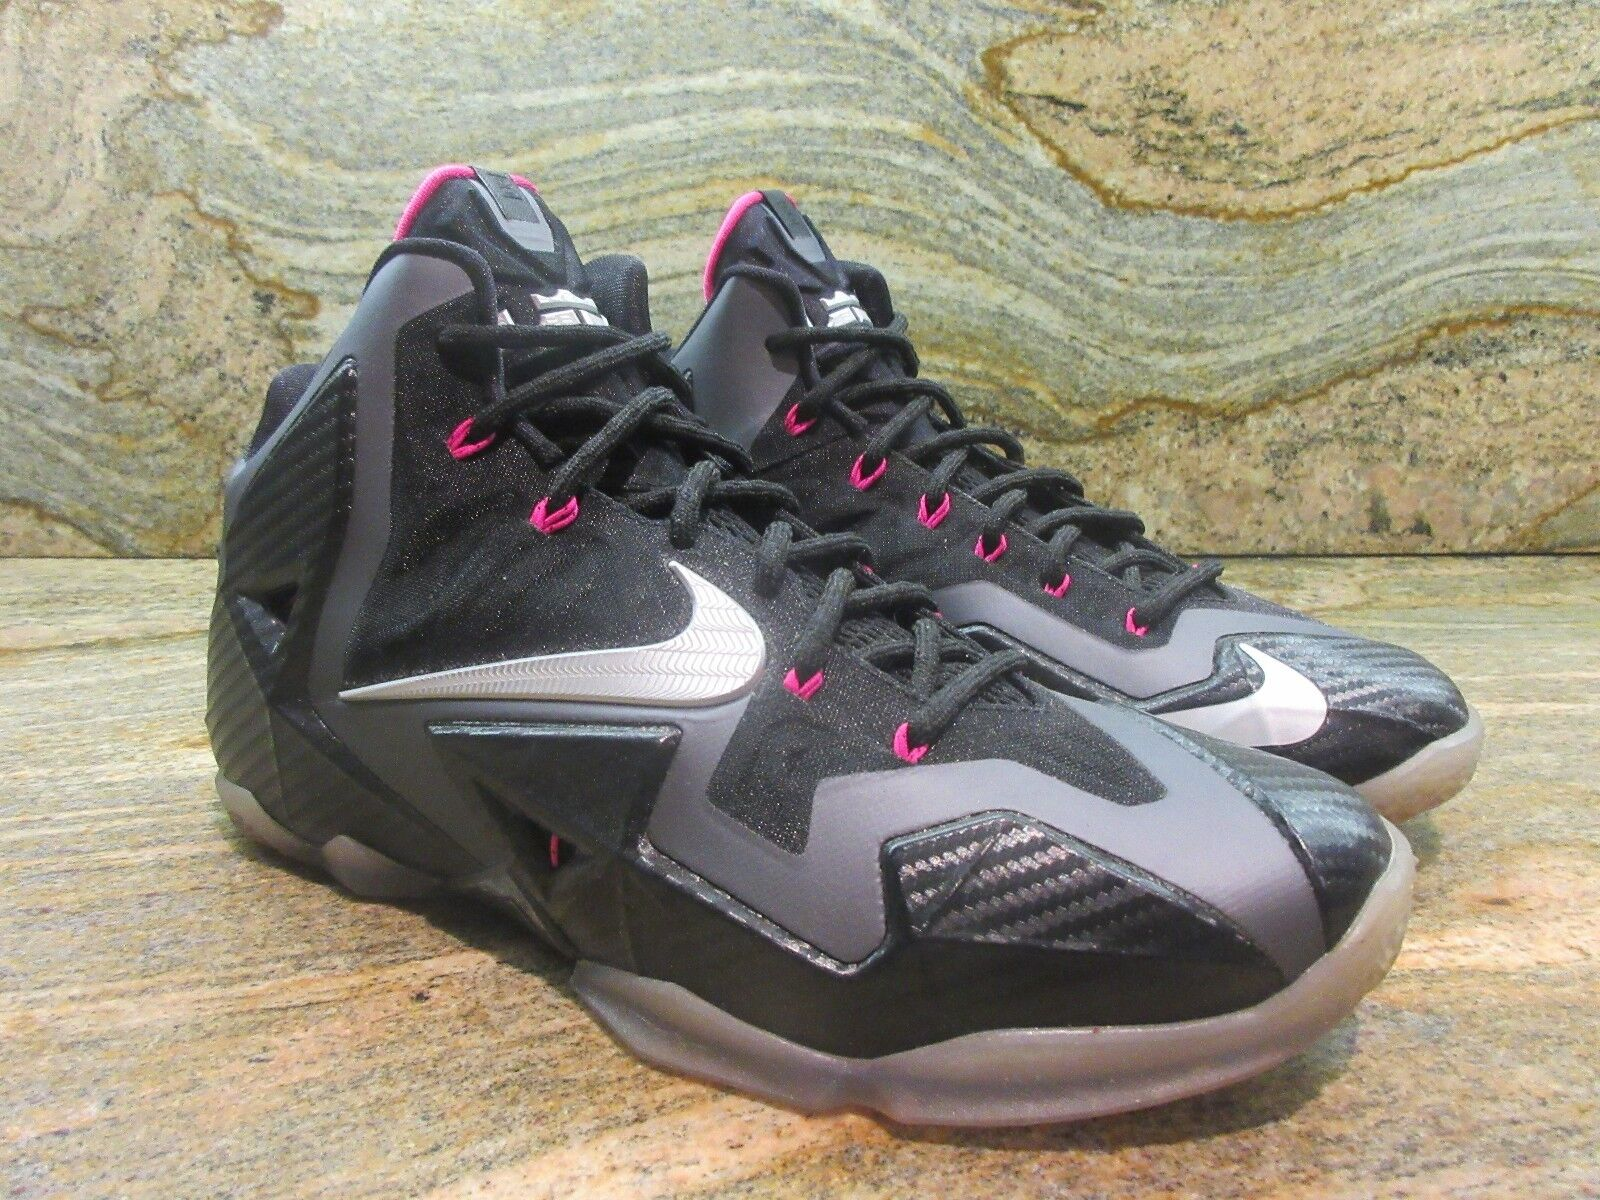 hot sale online 960be 38591 2013 Nike Lebron 11 XI Sample SZ 9 9 9 Miami Nights Carbon Fiber Promo James